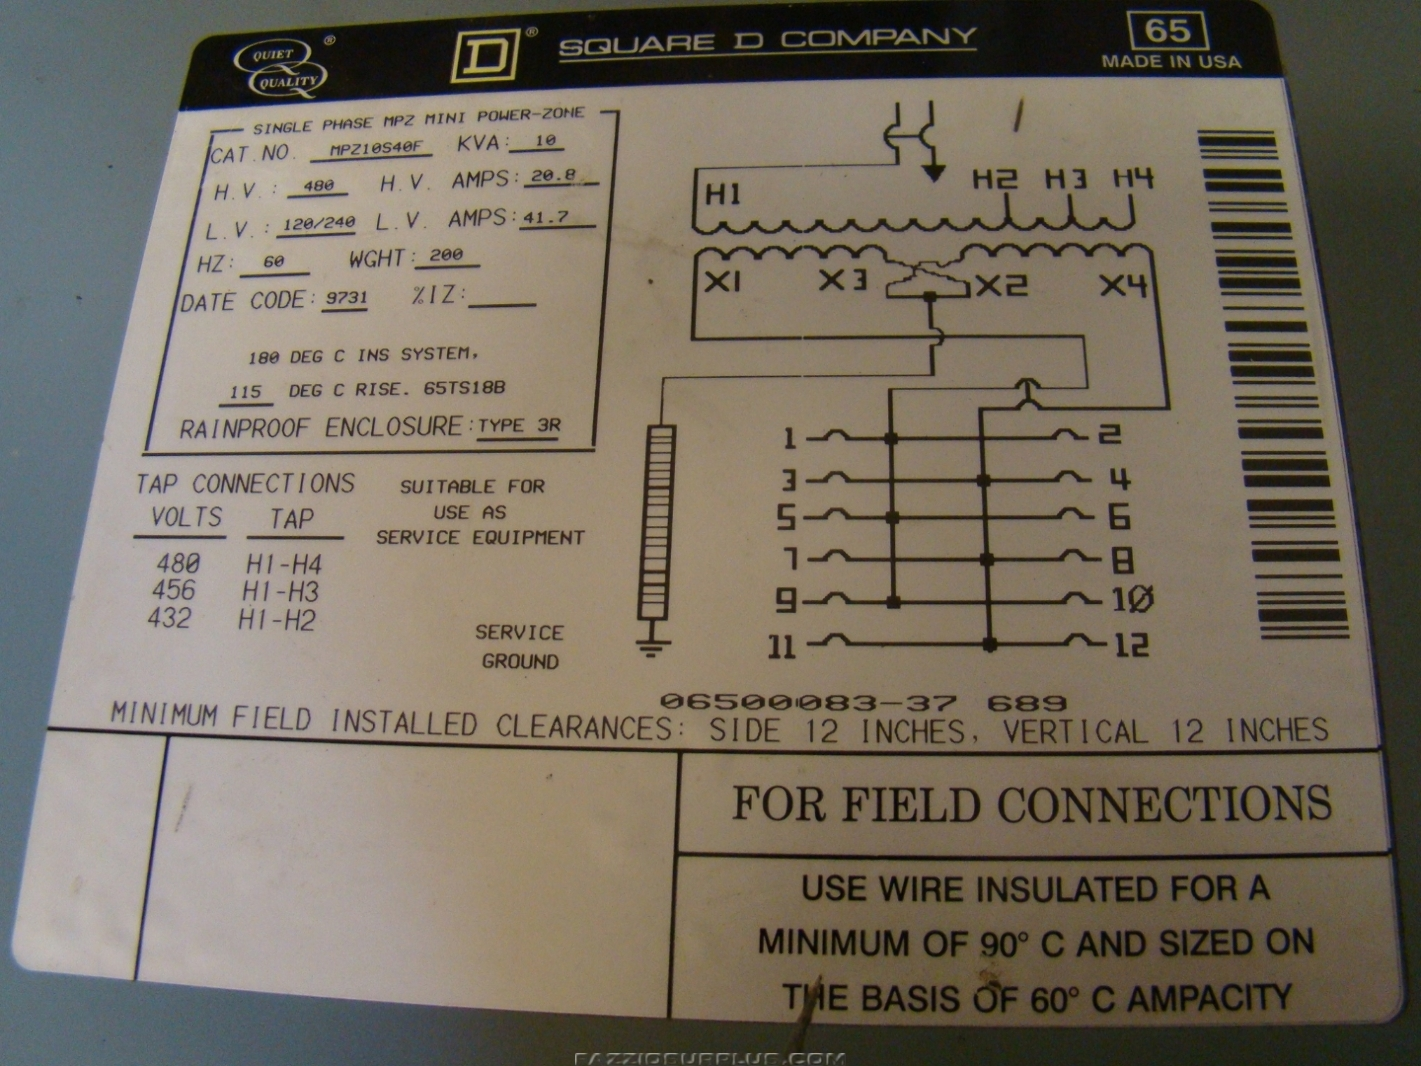 hight resolution of square d single phase transformer wiring diagram wiring solutions square d 75 kva